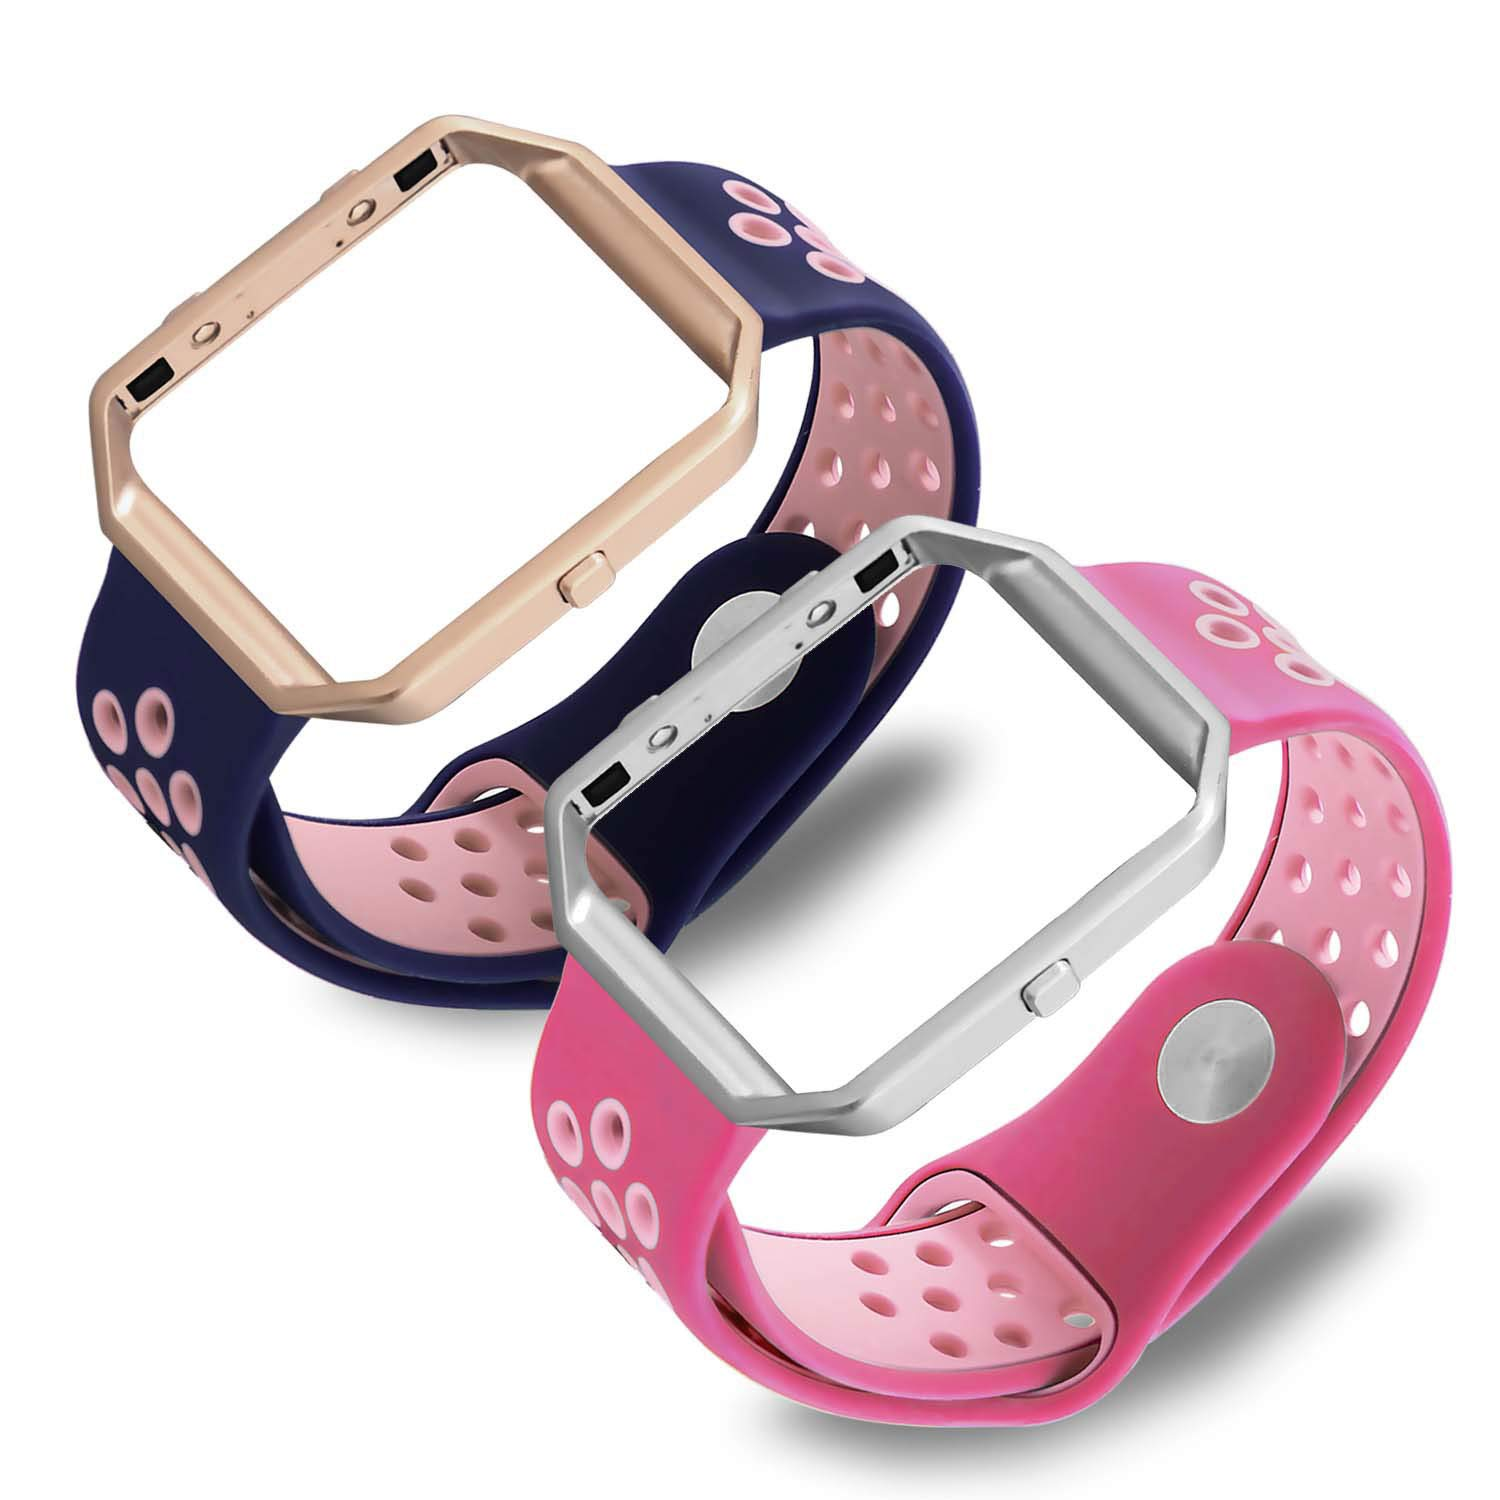 eseekgo for Fitbit Blazeバンド、スポーツシリコンストラップwith Frame for Fitbit Blaze Replacement Smart Watchリストバンド(トラッカーなし) Large Size (6.7\ Blue Band+Rose Gold Frame;Hot Pink Band+Silver Frame B076GJGMBK